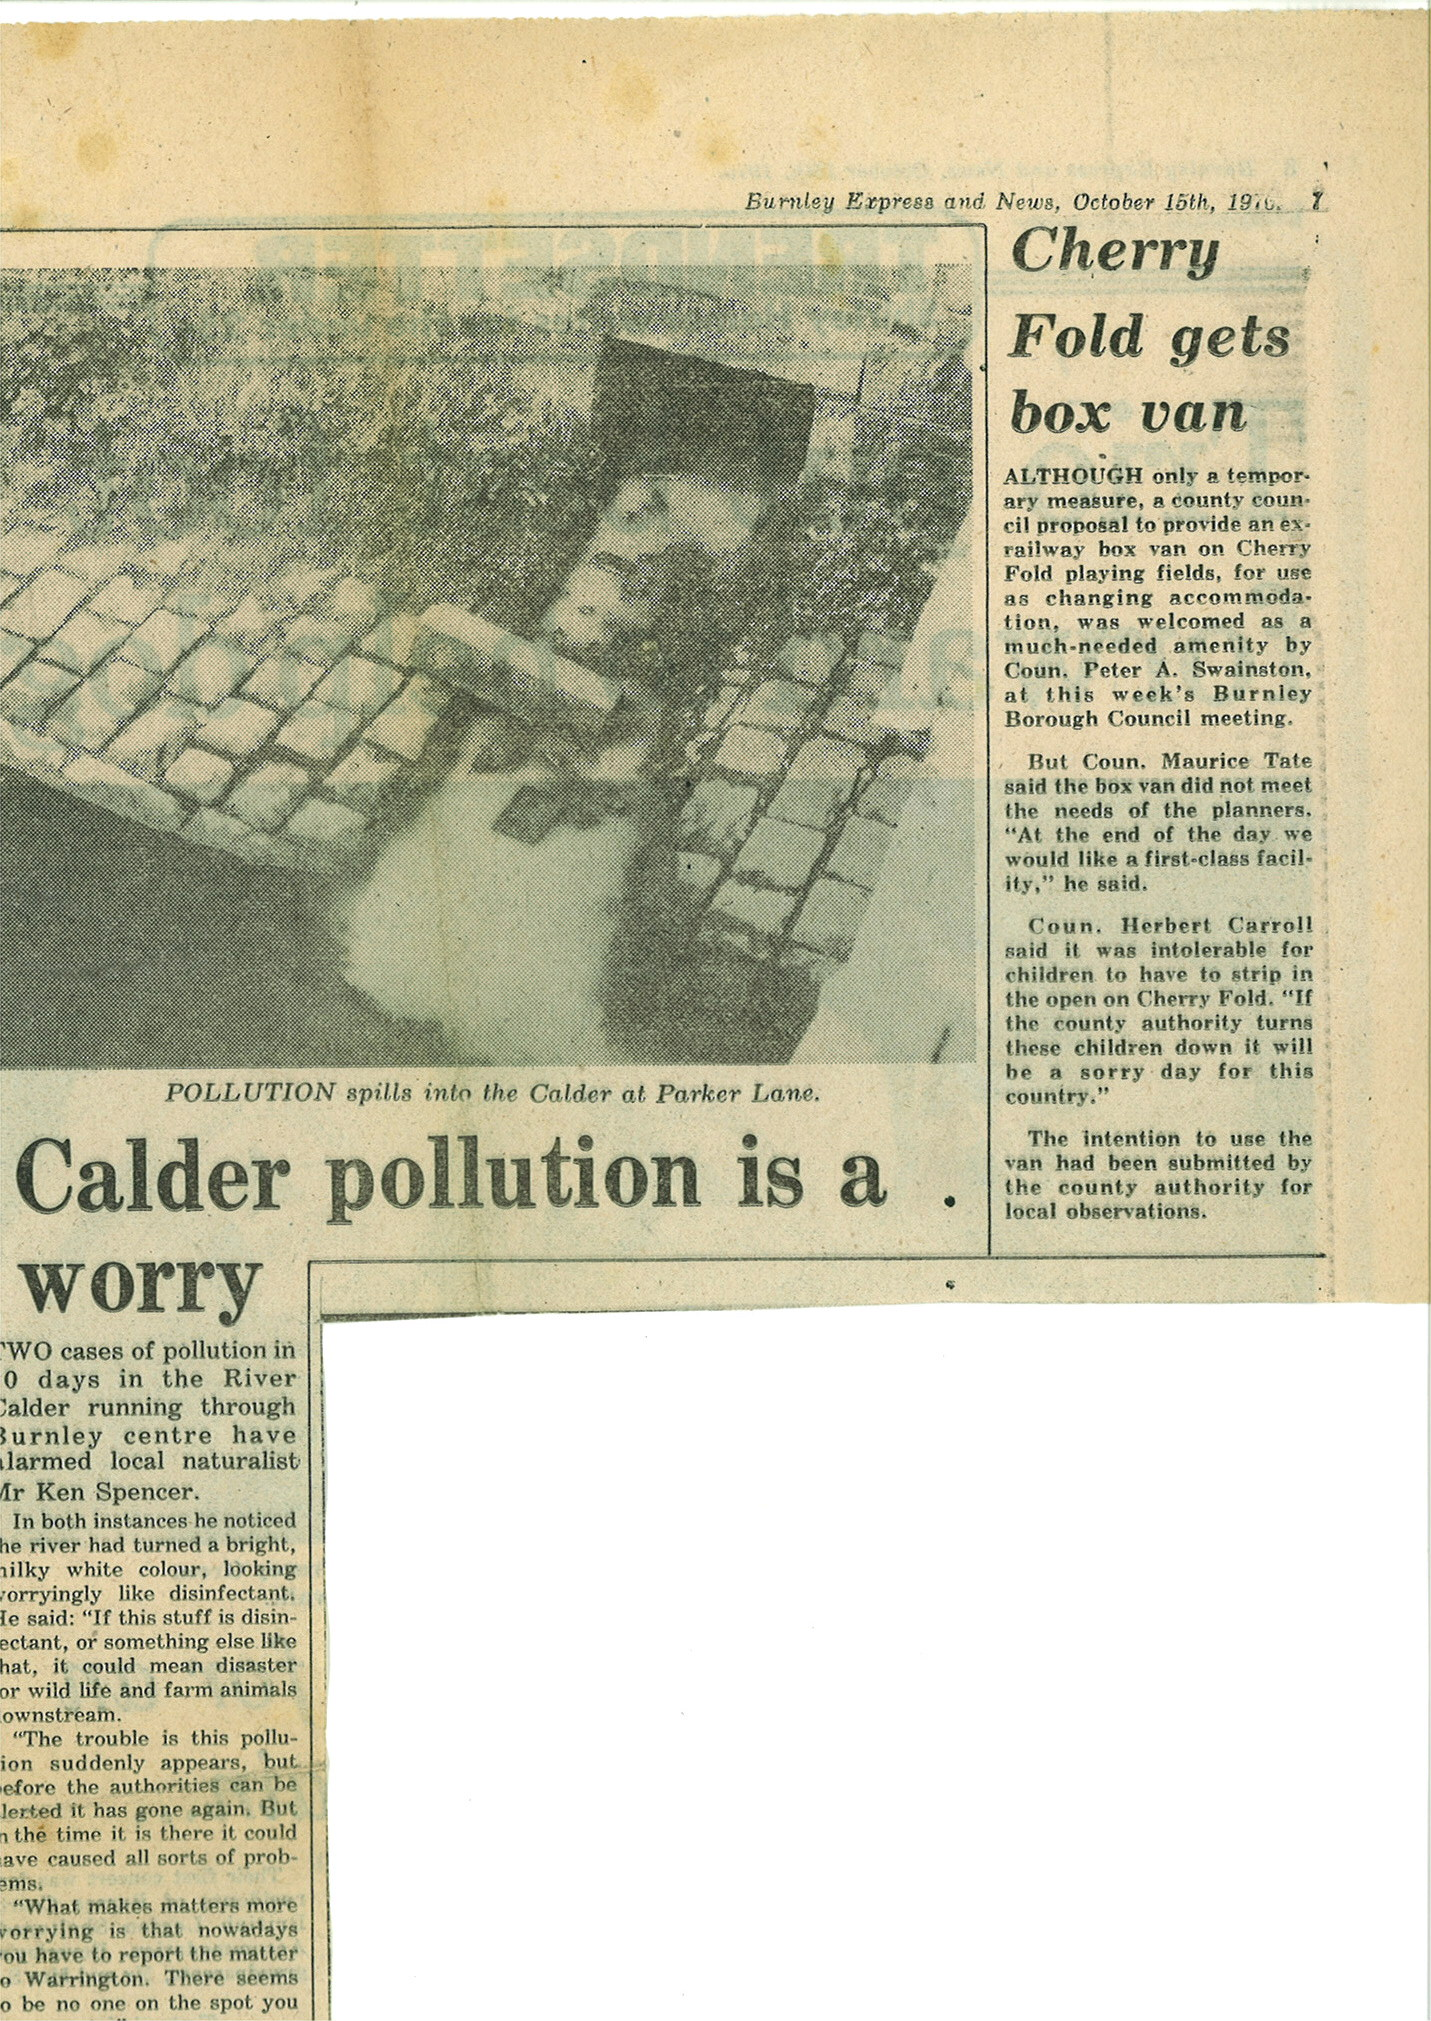 1976 October 15 Calder Pollution is a worry.jpg